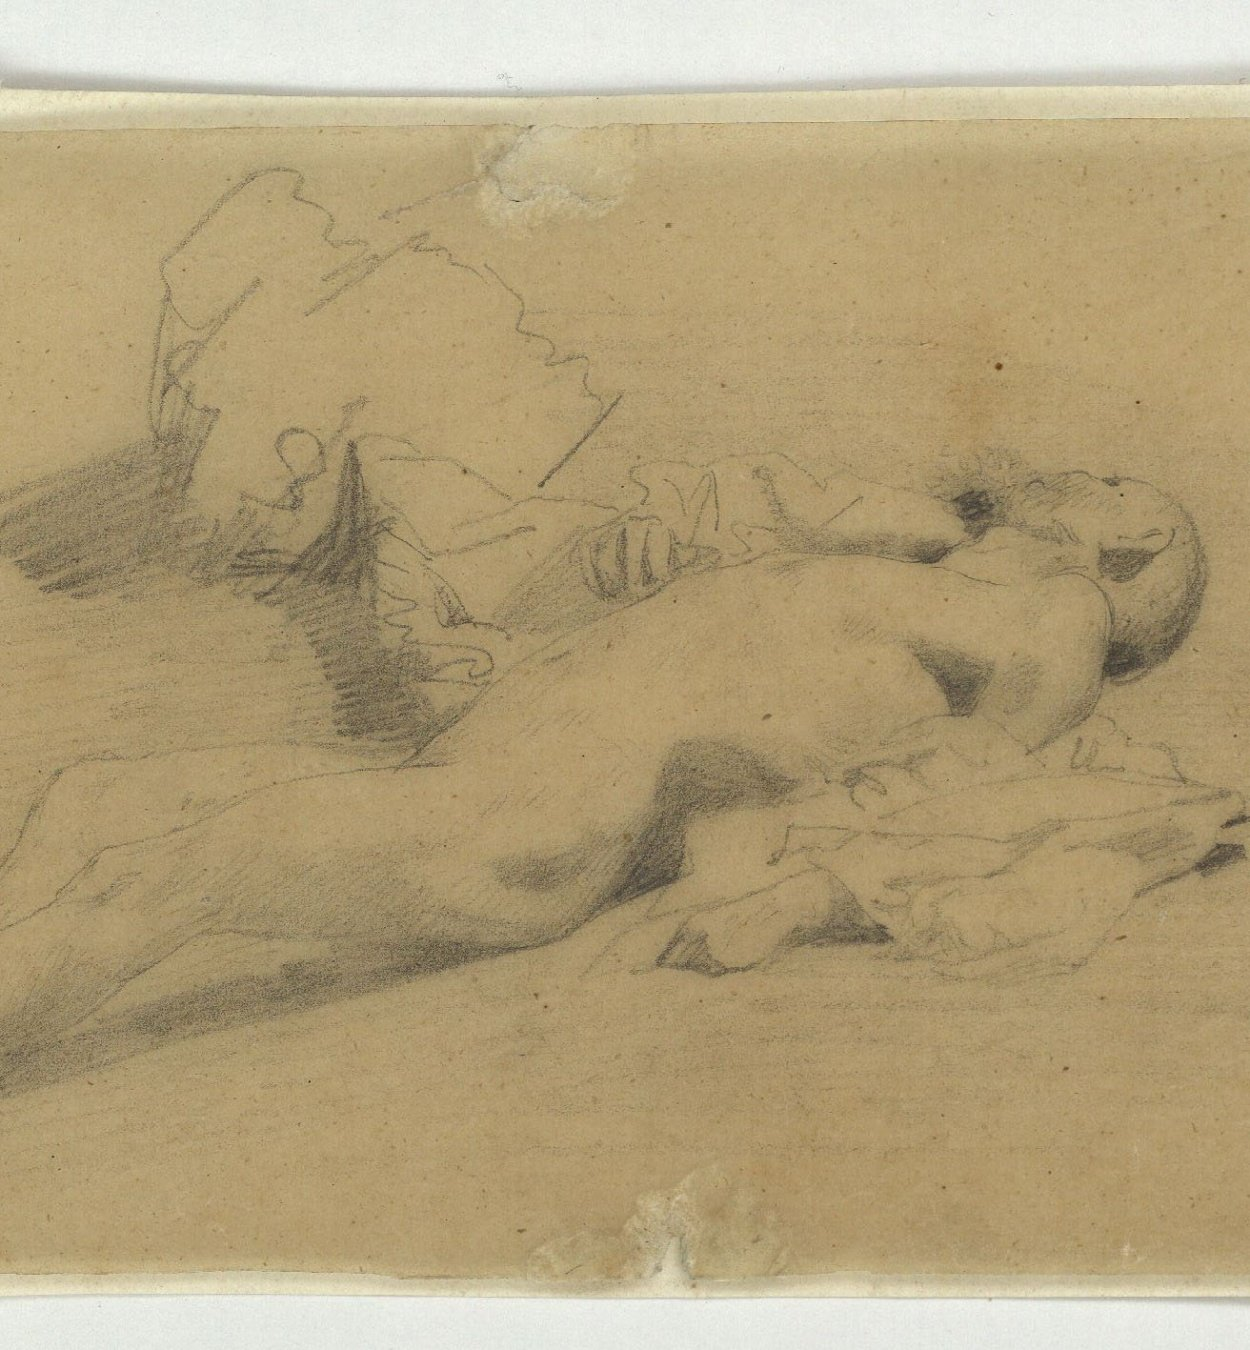 Marià Fortuny - Dead Moroccan. Study for the picture 'The Battle of Tetouan' - Circa 1860